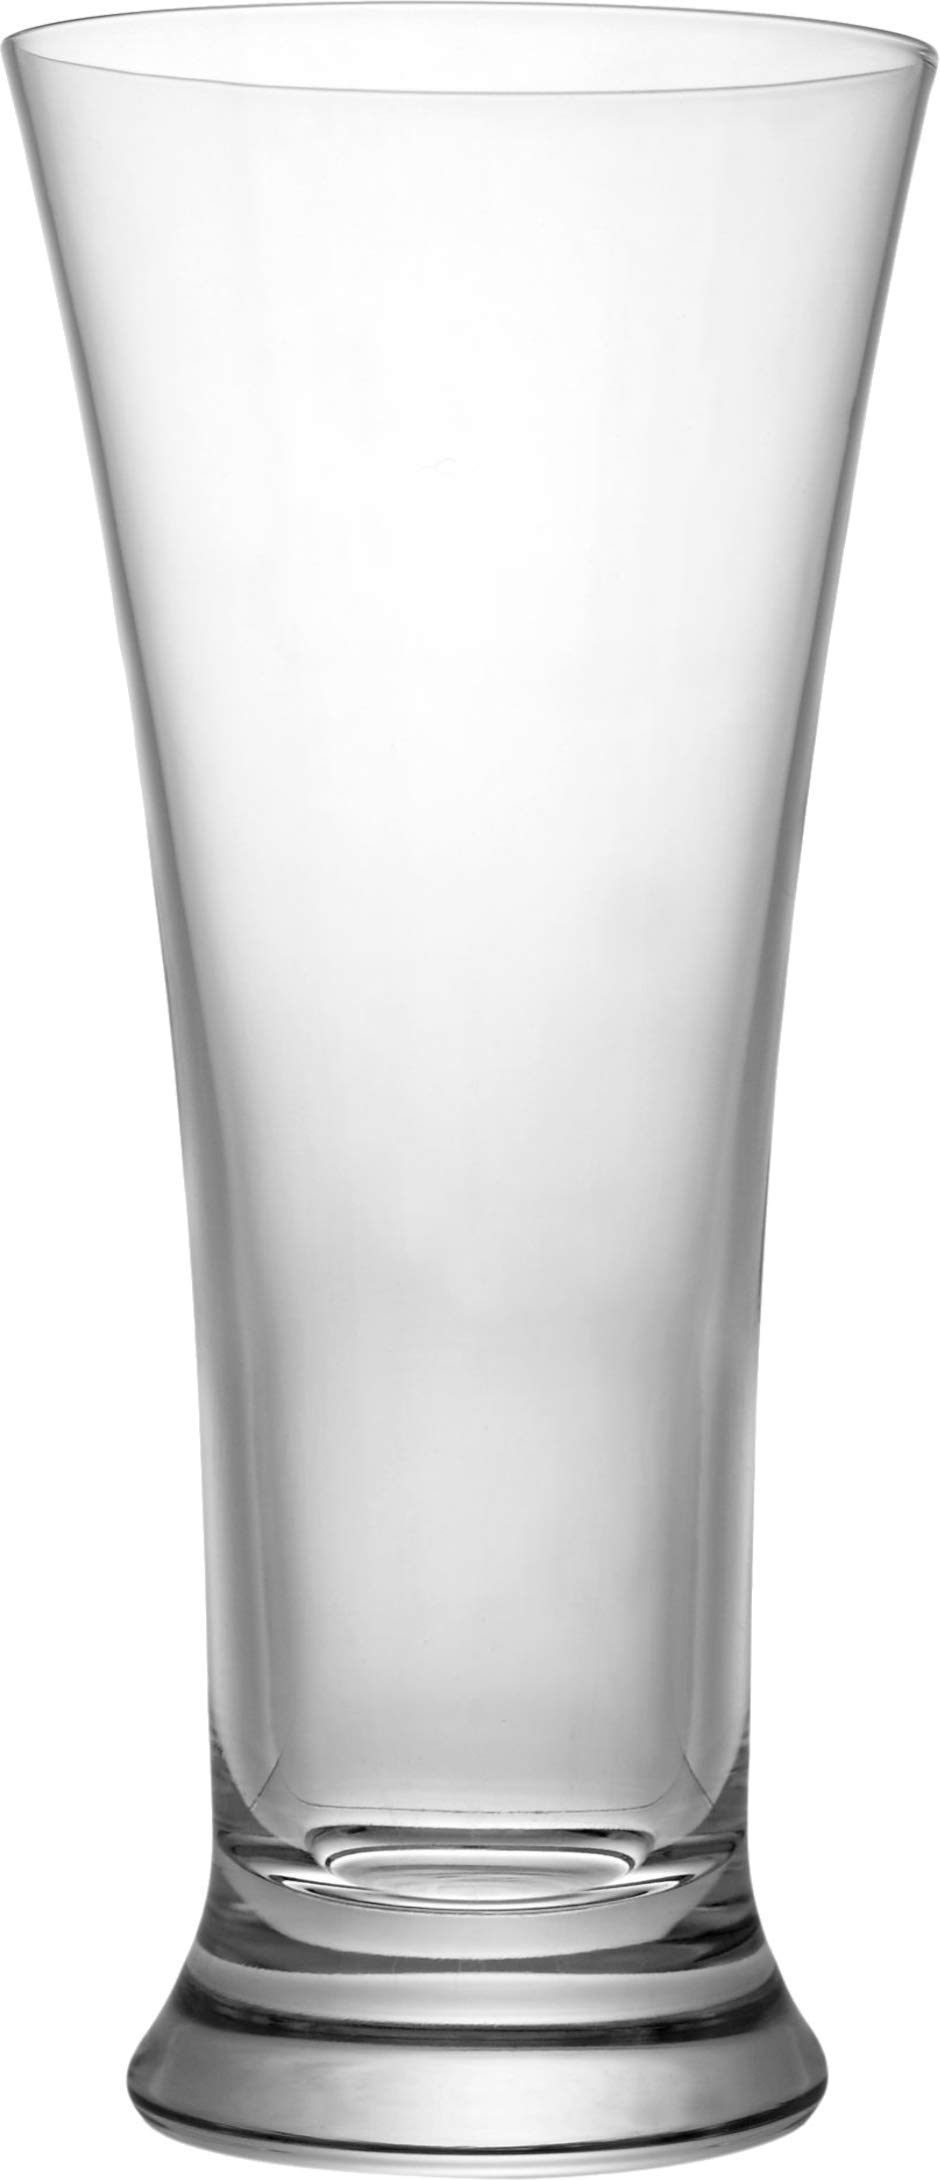 Circleware 00963 Quench Beer Drinking Glasses, Set of 12 Home & Kitchen Dinnerware Highball Glassware for Water, Wine, Juice and Best Bar Liquor Dining Decor Beverage 11.5 oz Huge 12pc-set by Circleware (Image #2)